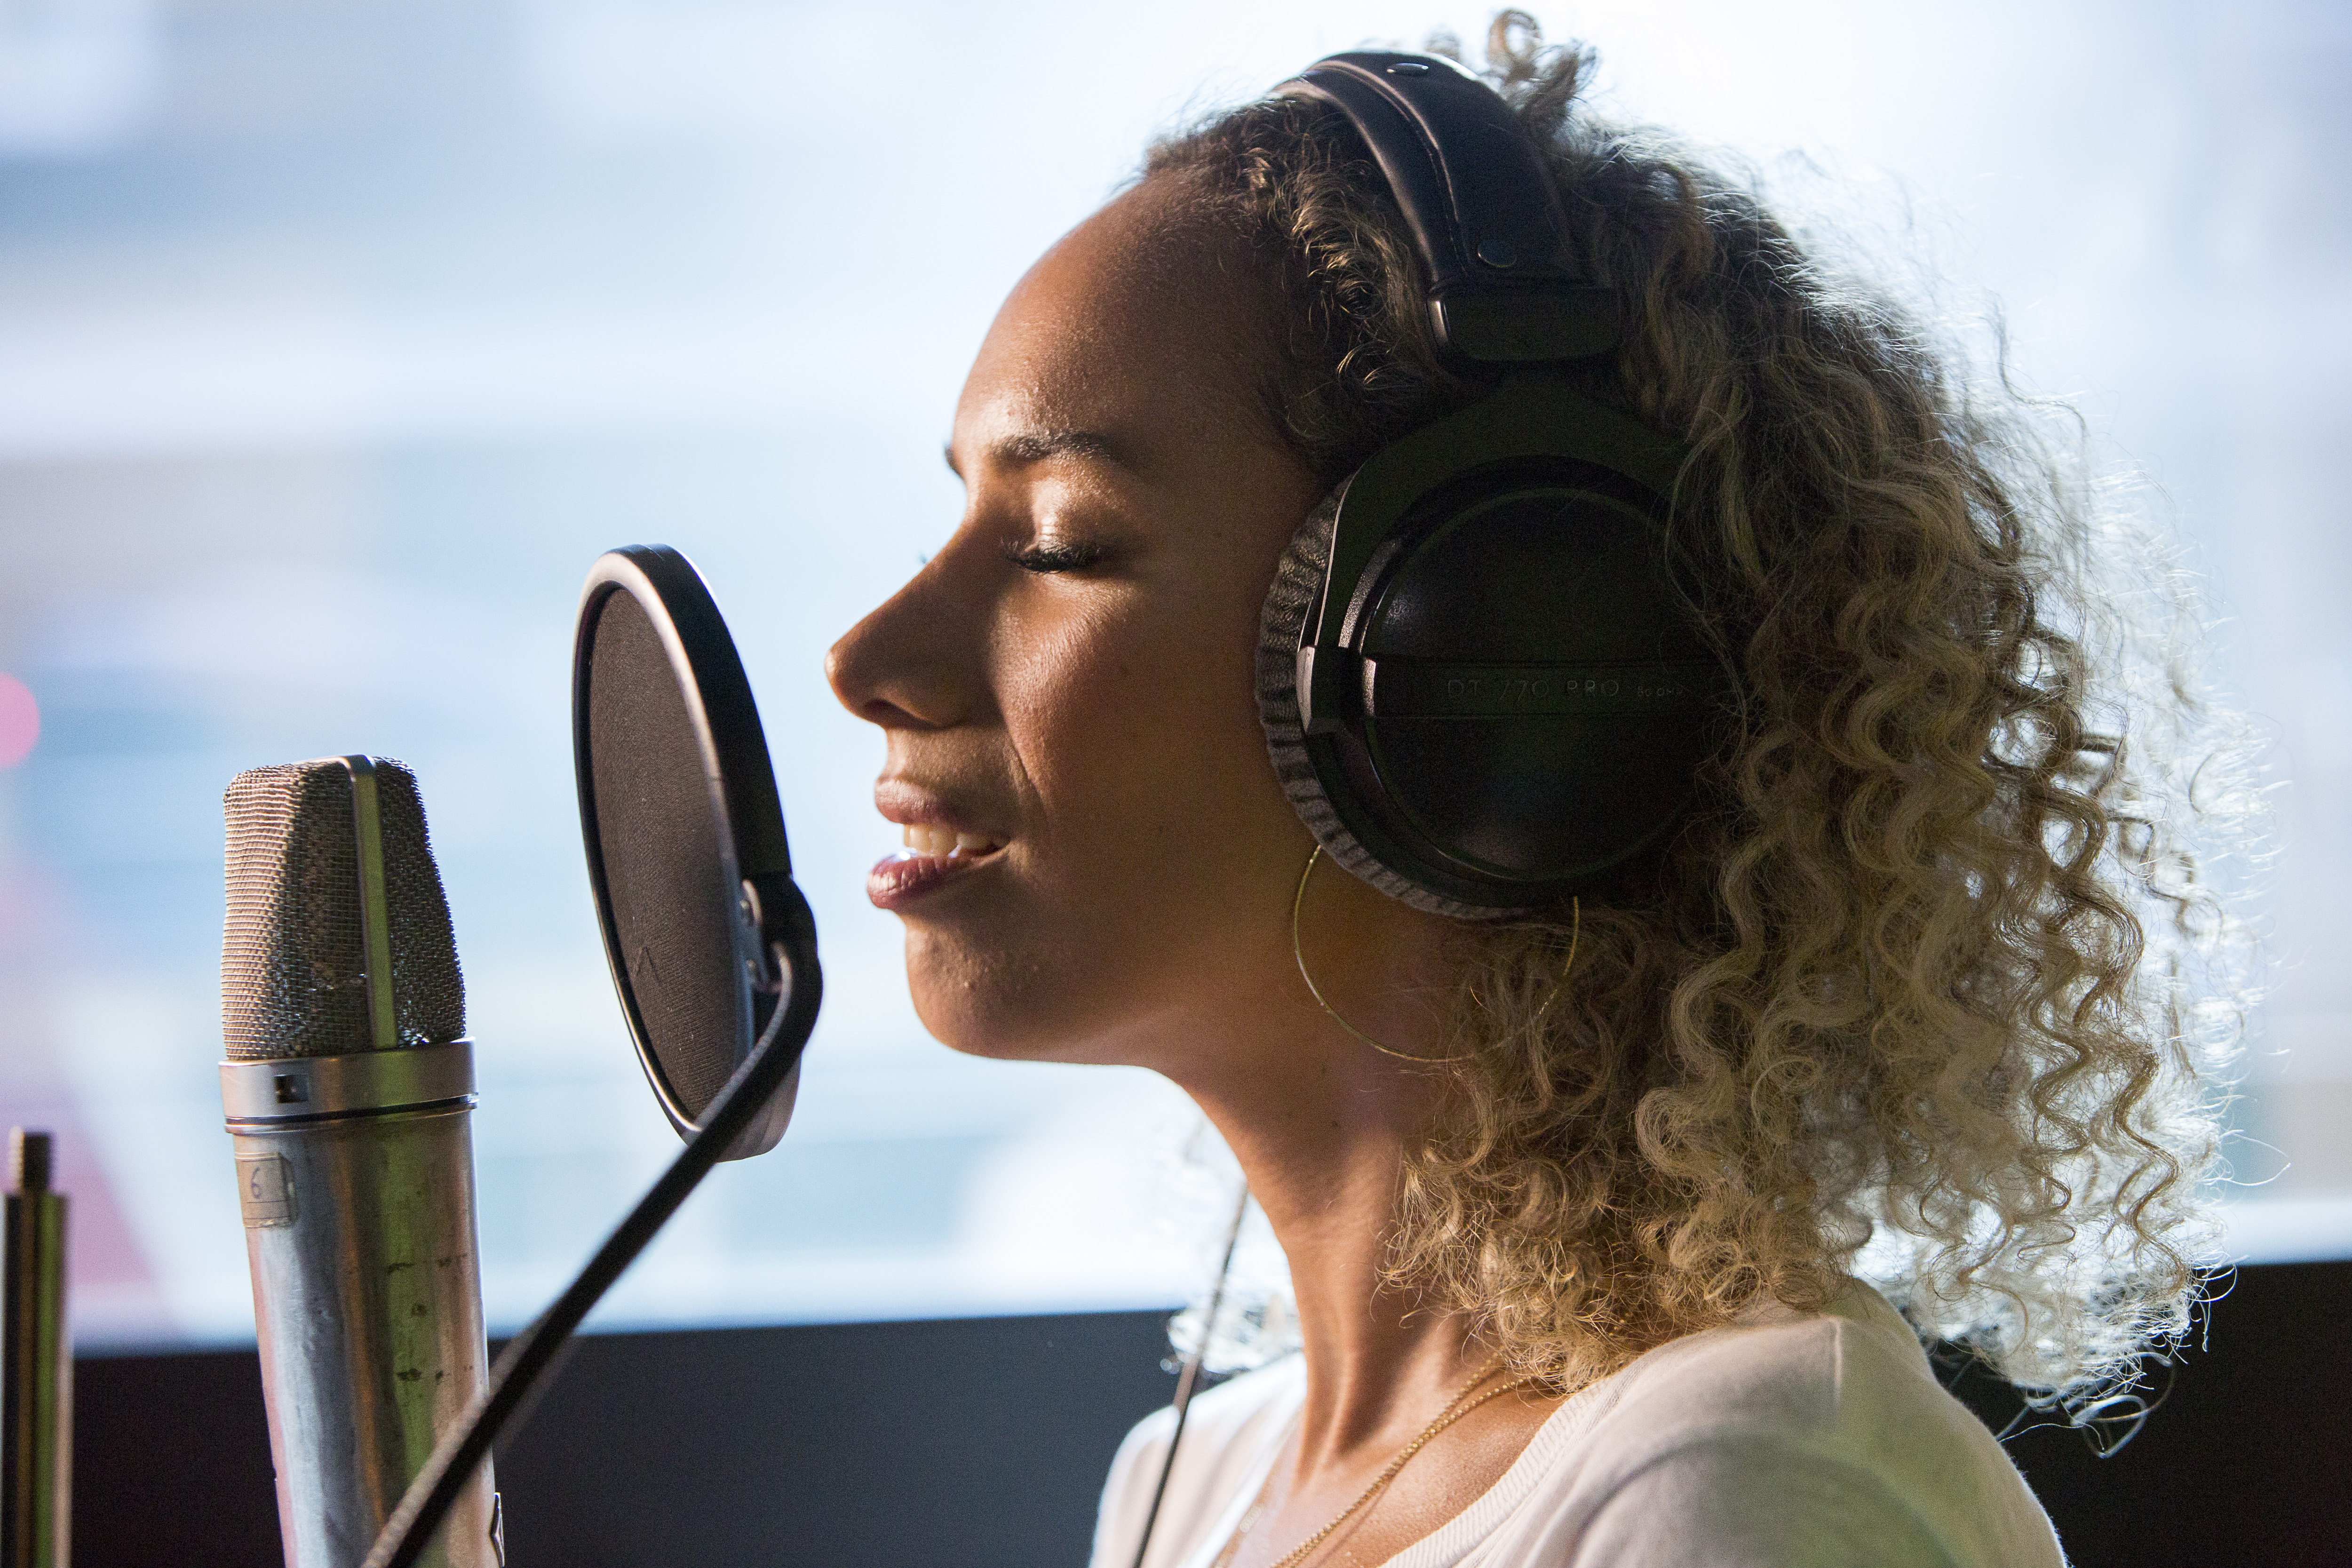 Grenfell Behind the scenes Leona Lewis